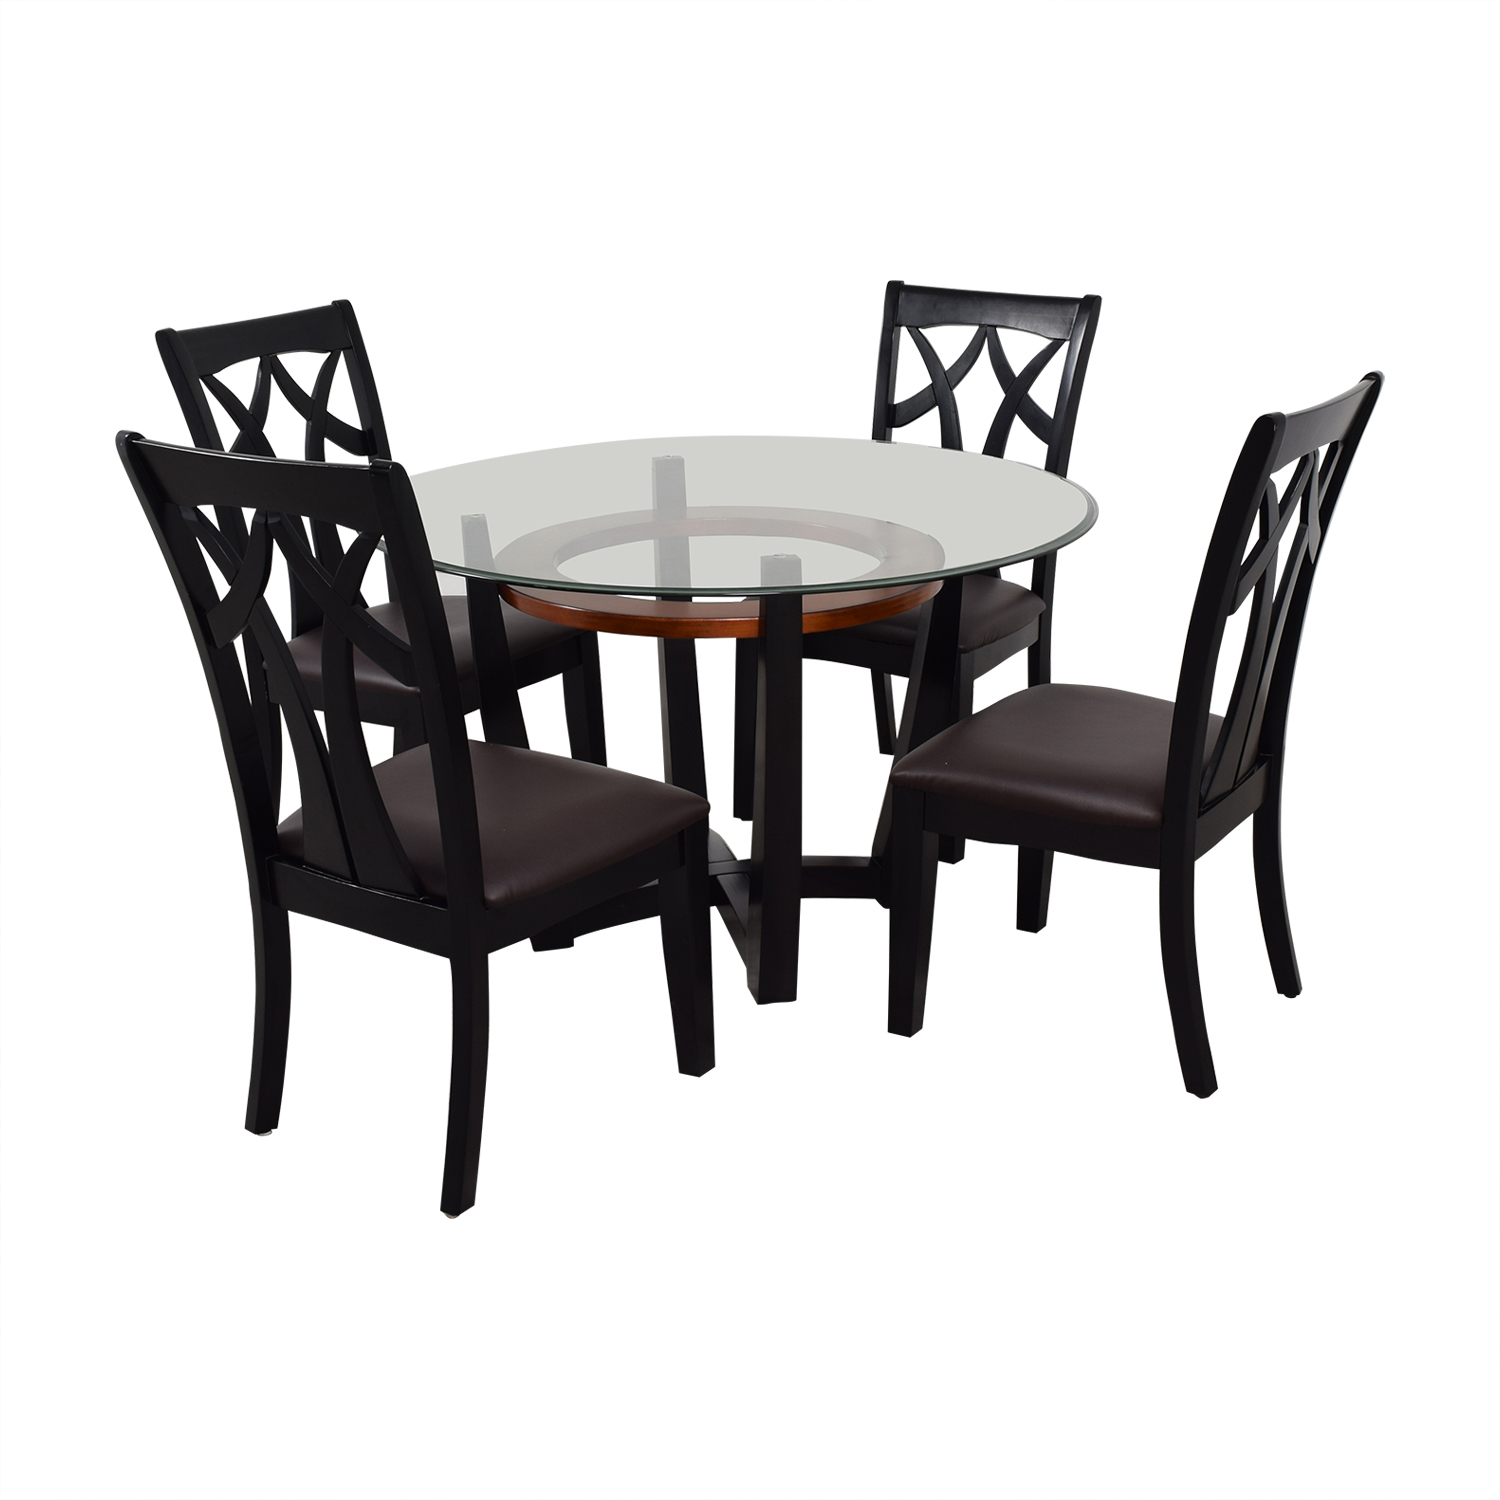 Raymour & Flanigan Wood and Glass Dining Set sale